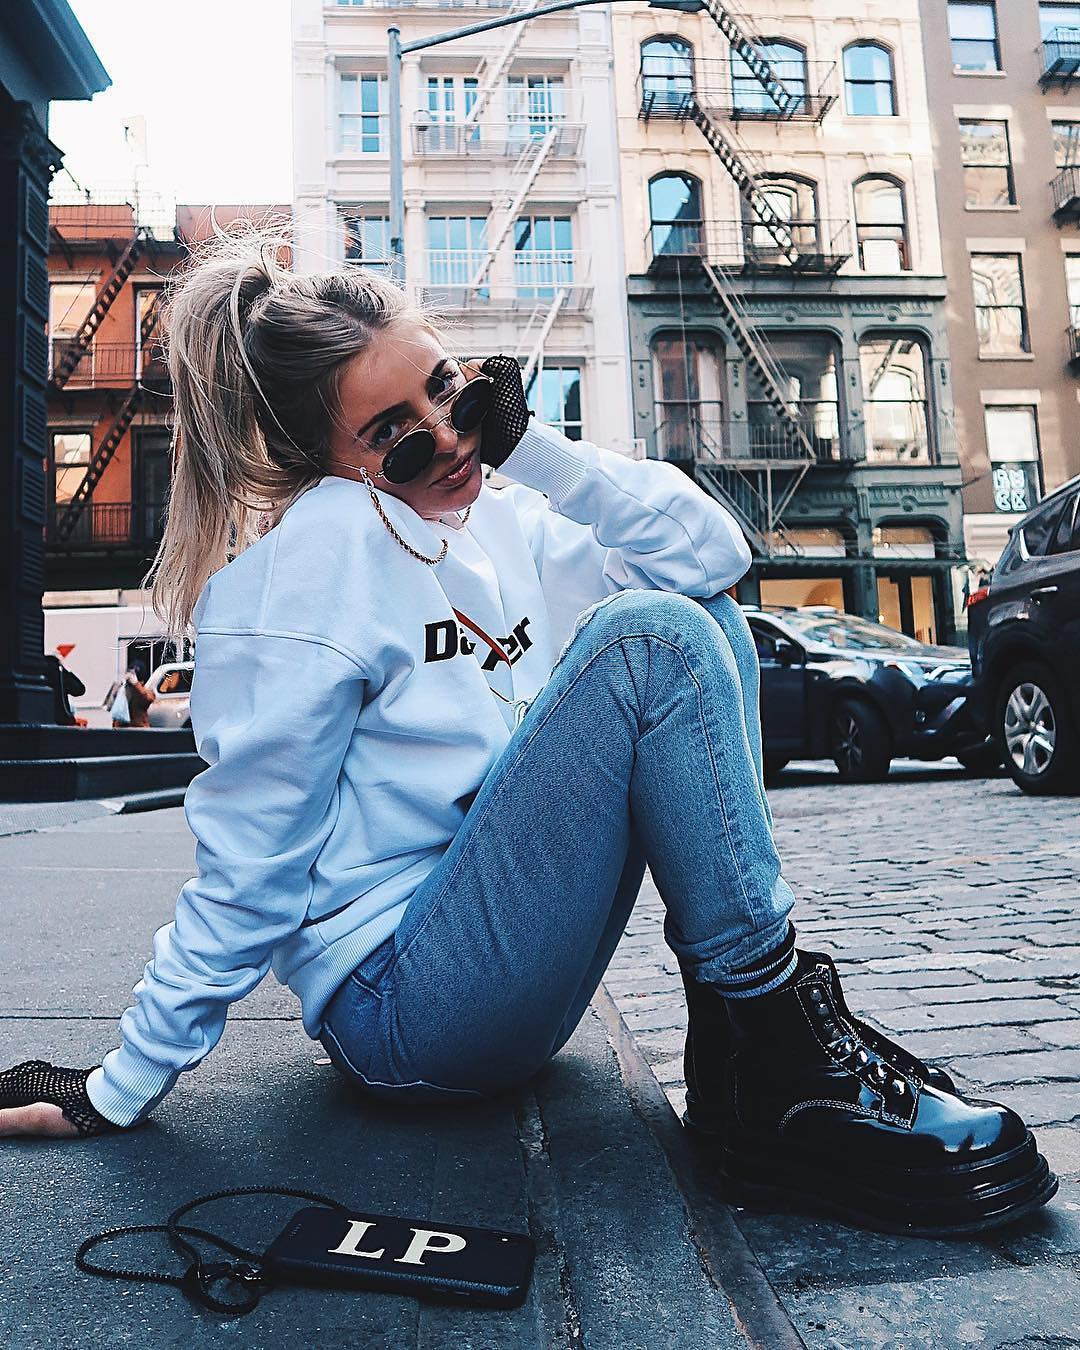 Patent Combat Boots, White Sweatshirt And Jeans For Casual Street Walks 2020